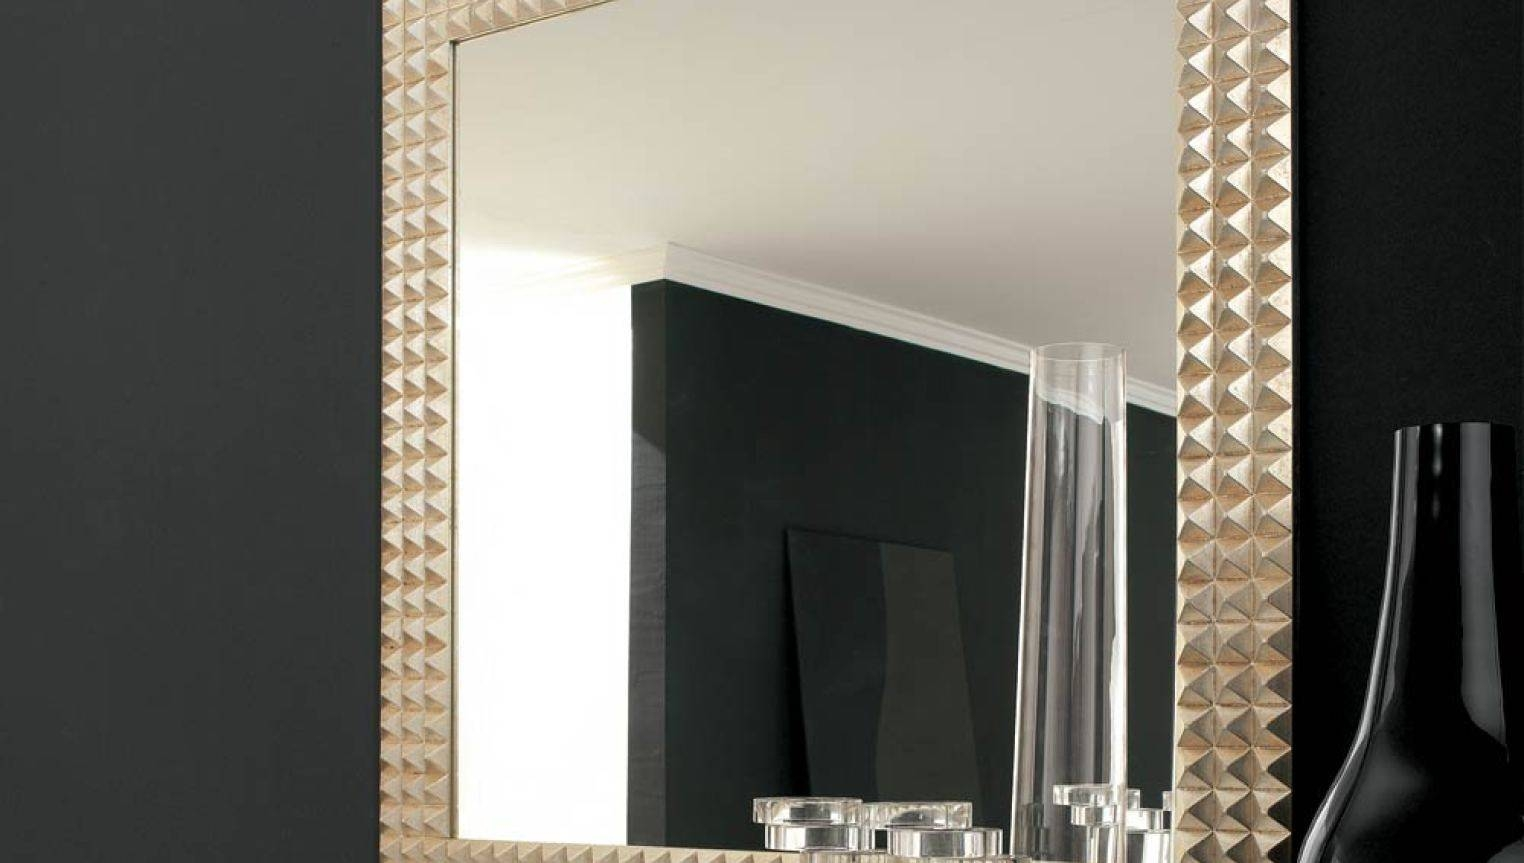 Mirror : Mirrors Stunning Black Mirrors For Sale Bling Glam Floor throughout Bling Floor Mirrors (Image 12 of 15)